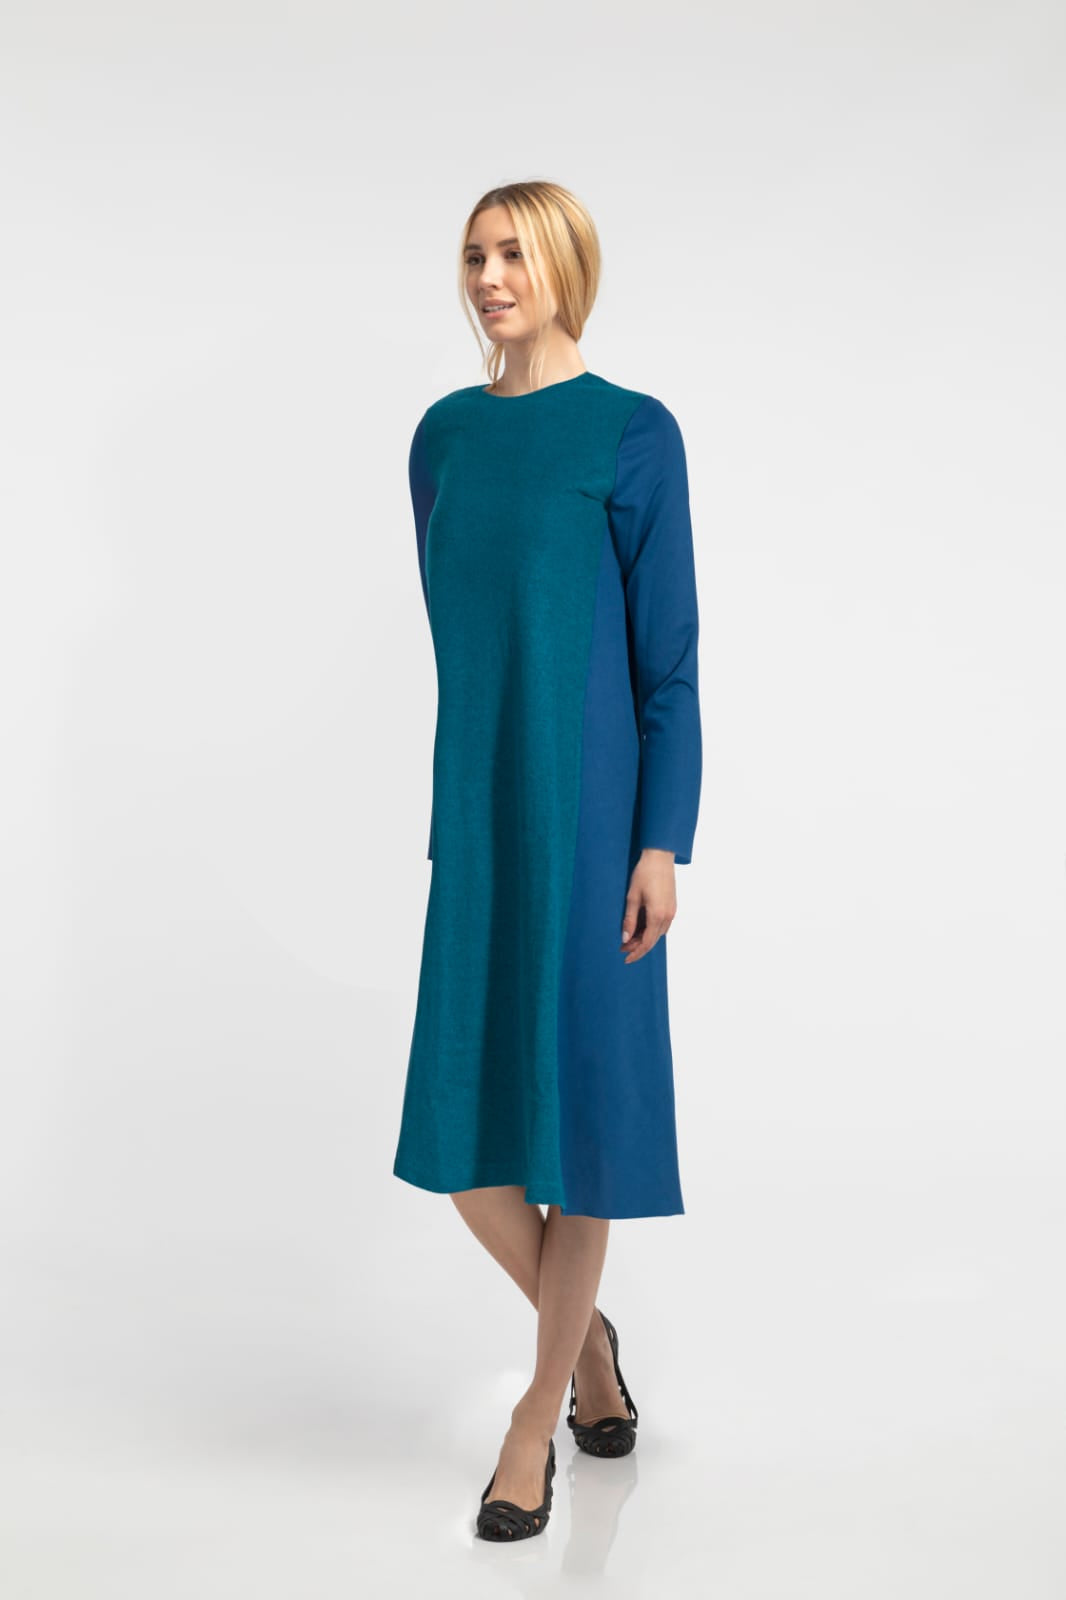 Two-Tone Dress - Blue/Green